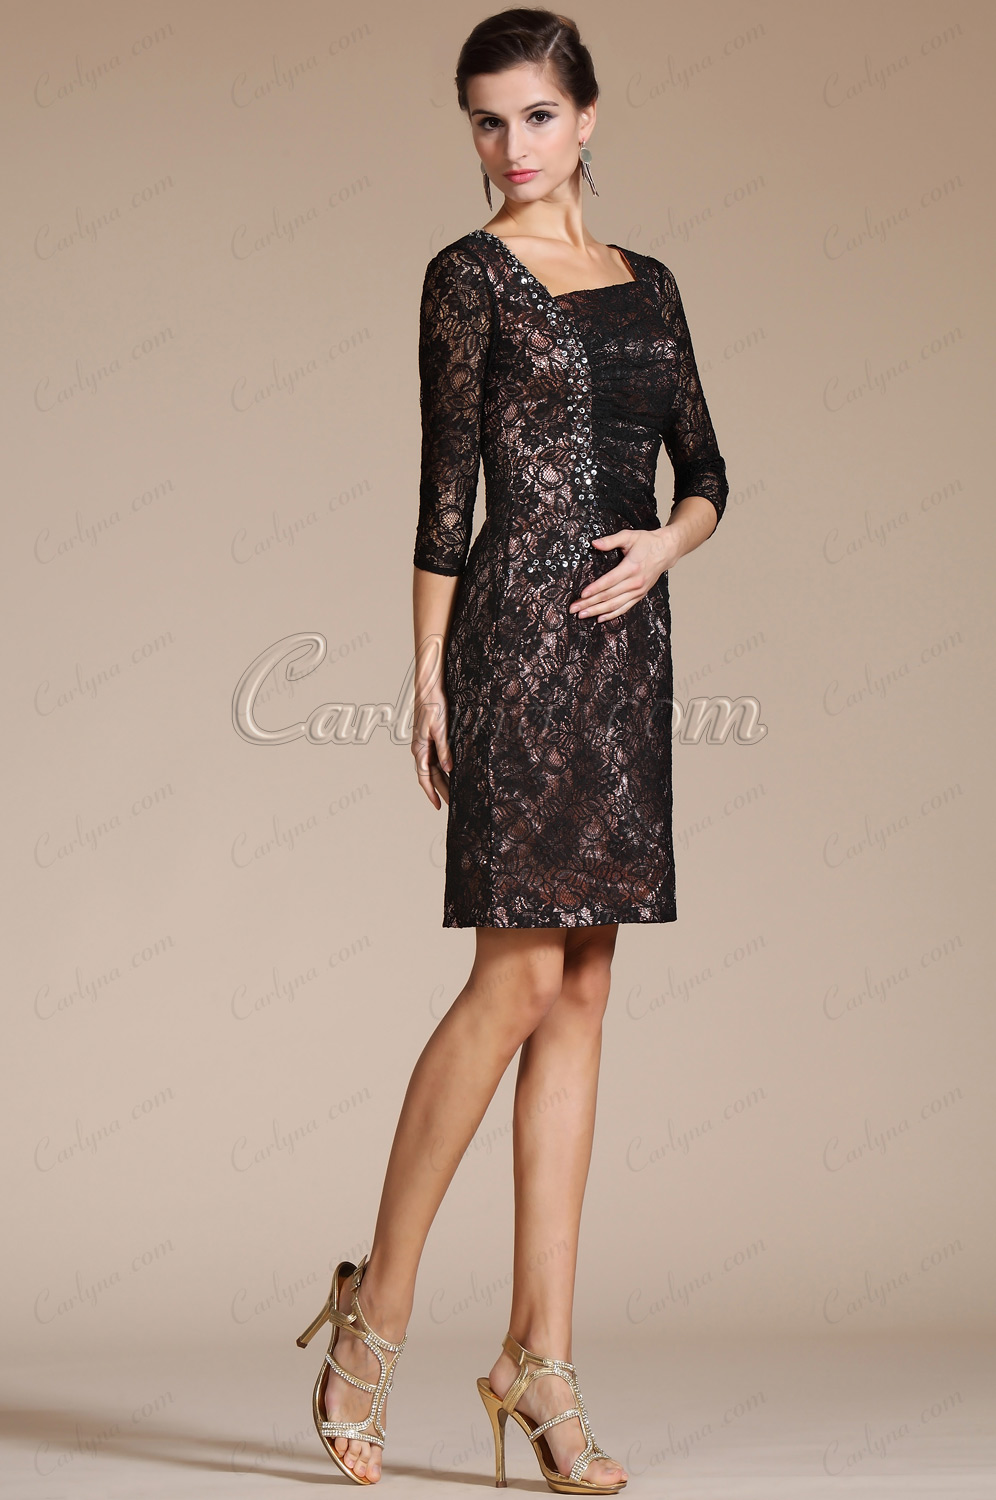 Carlyna 2014 New Asymmetrical Neckline Cocktail Dress/Mother of the Bride Dress (C35140200)